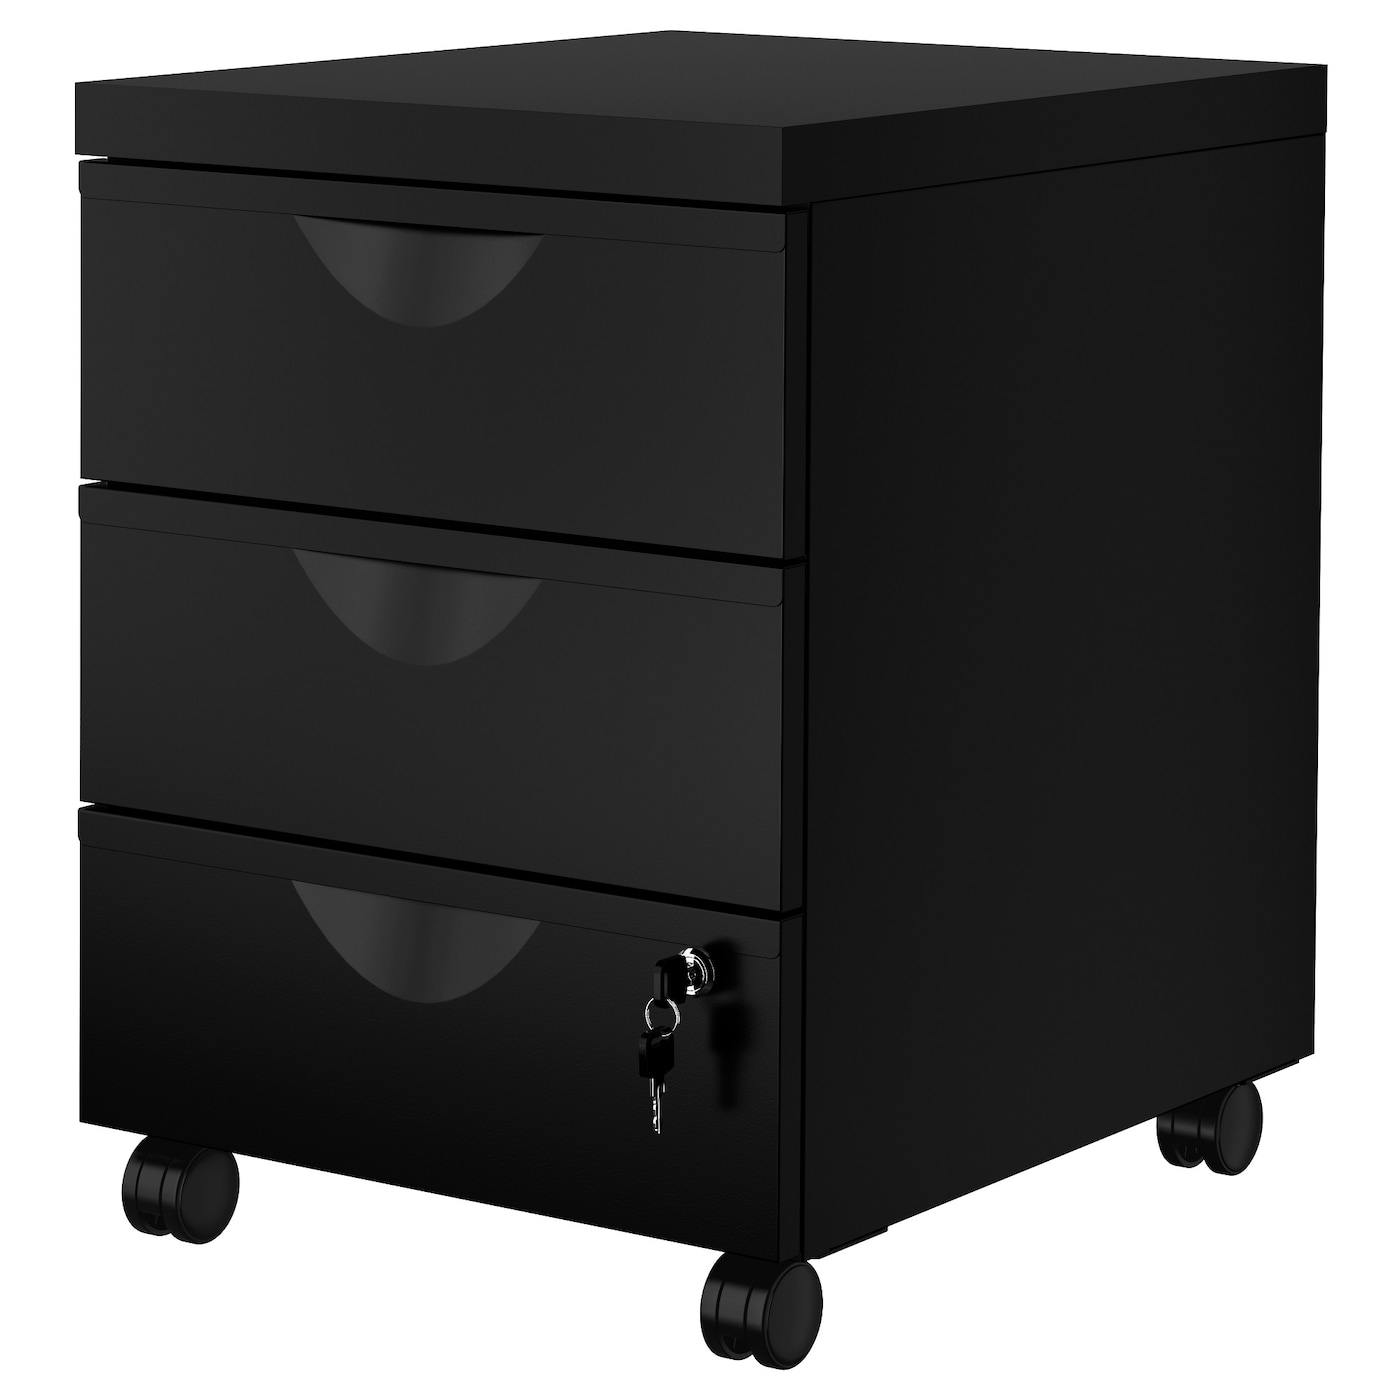 erik drawer unit w 3 drawers on castors black 41x57 cm ikea. Black Bedroom Furniture Sets. Home Design Ideas